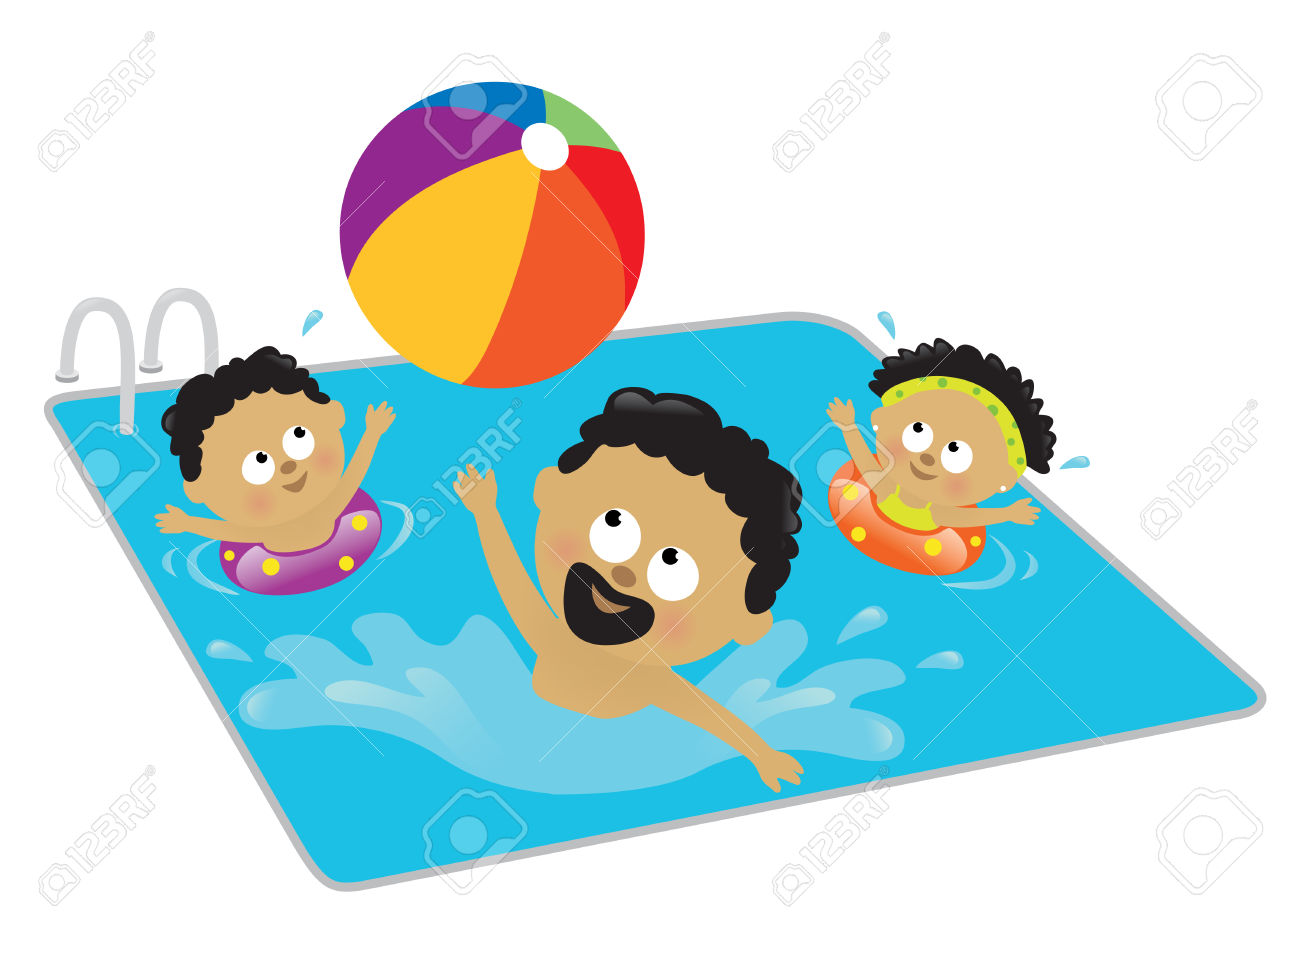 Kids swimming in a pool clipart.